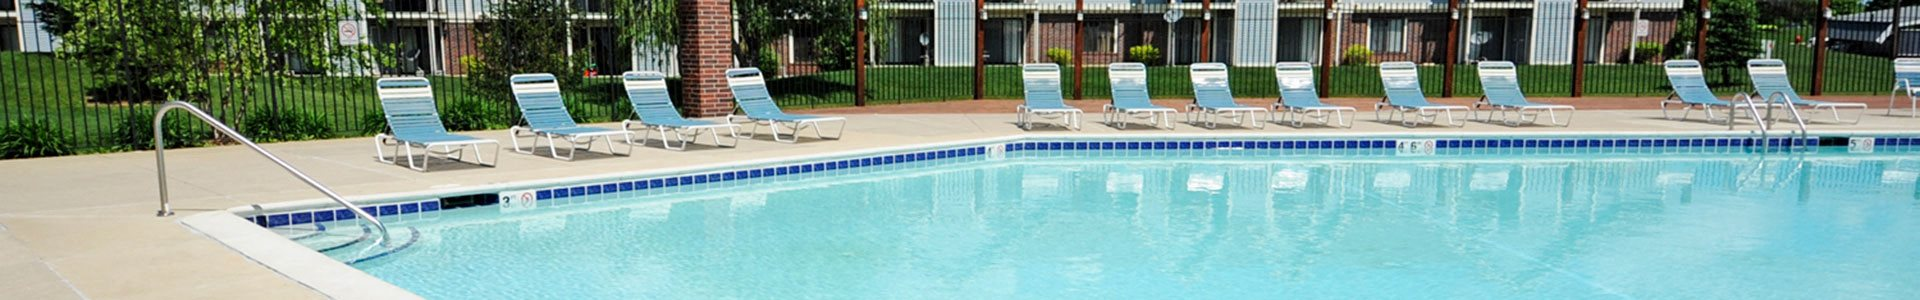 Outdoor Pool with Steps at Huntington Cove Apartments, Merrillville, IN